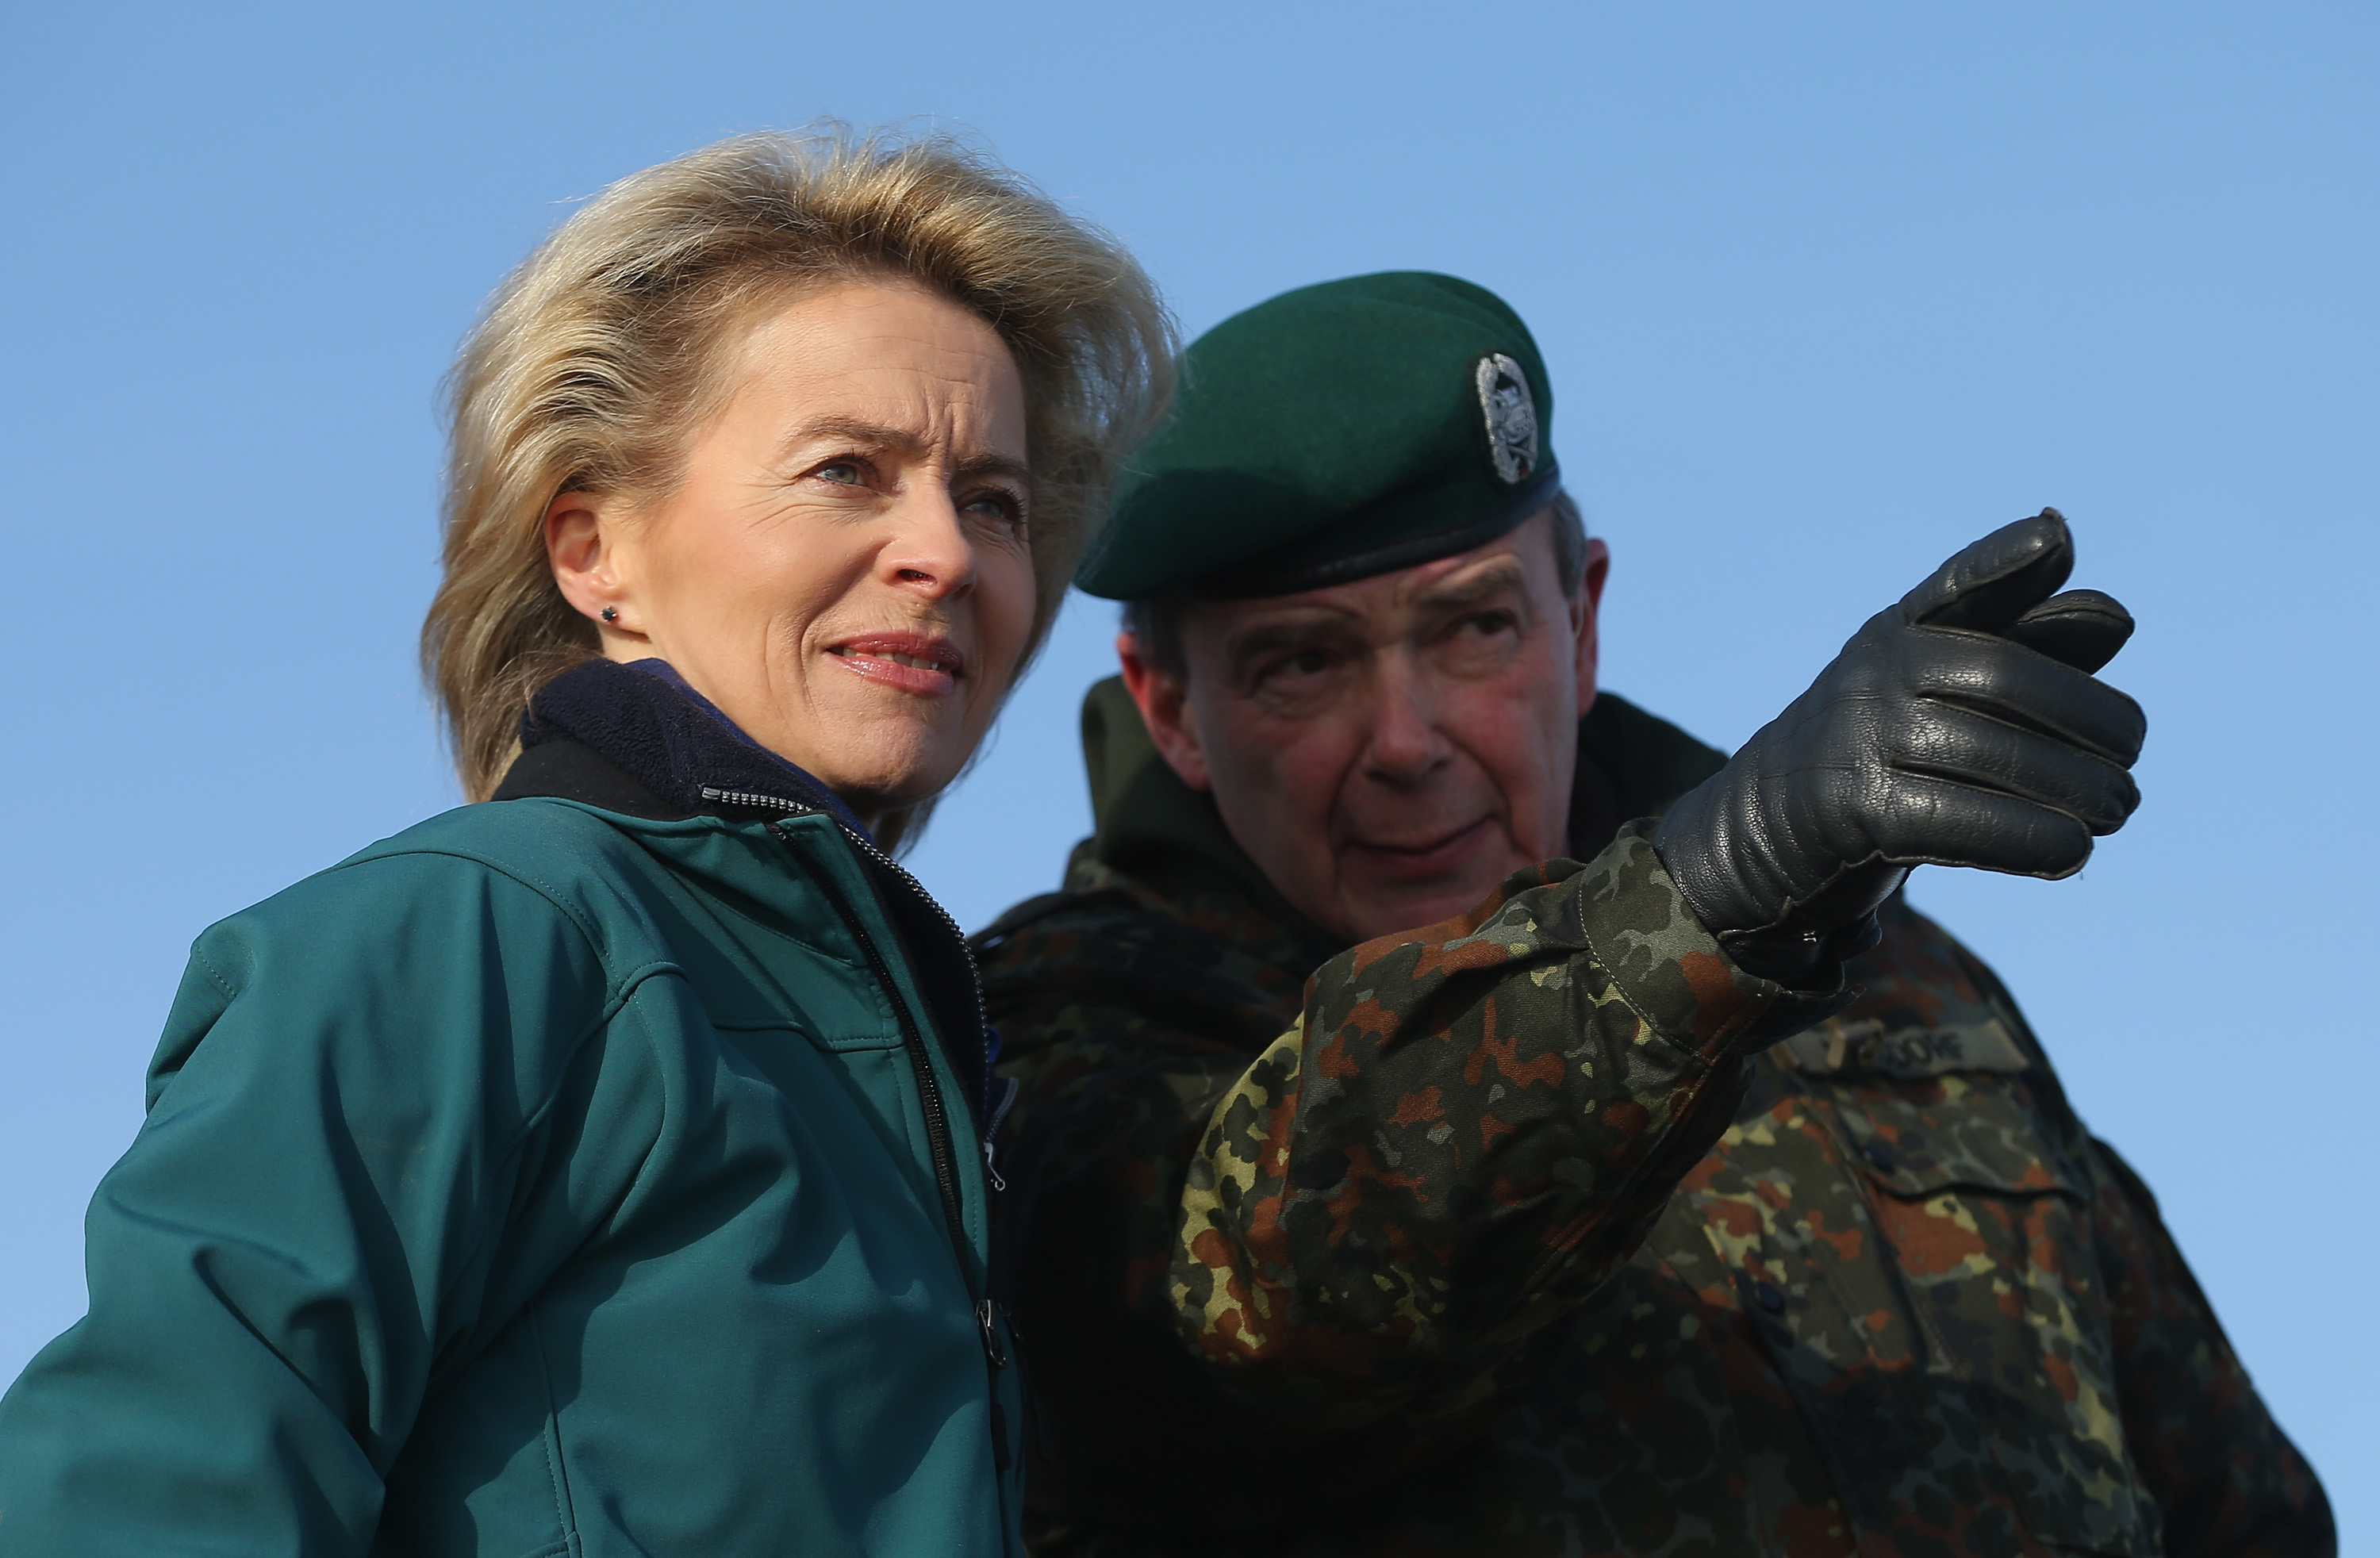 LETZLINGEN, GERMANY - JANUARY 28:  German Defense Minister Ursula von der Leyen observes tanks engaged in military exercises